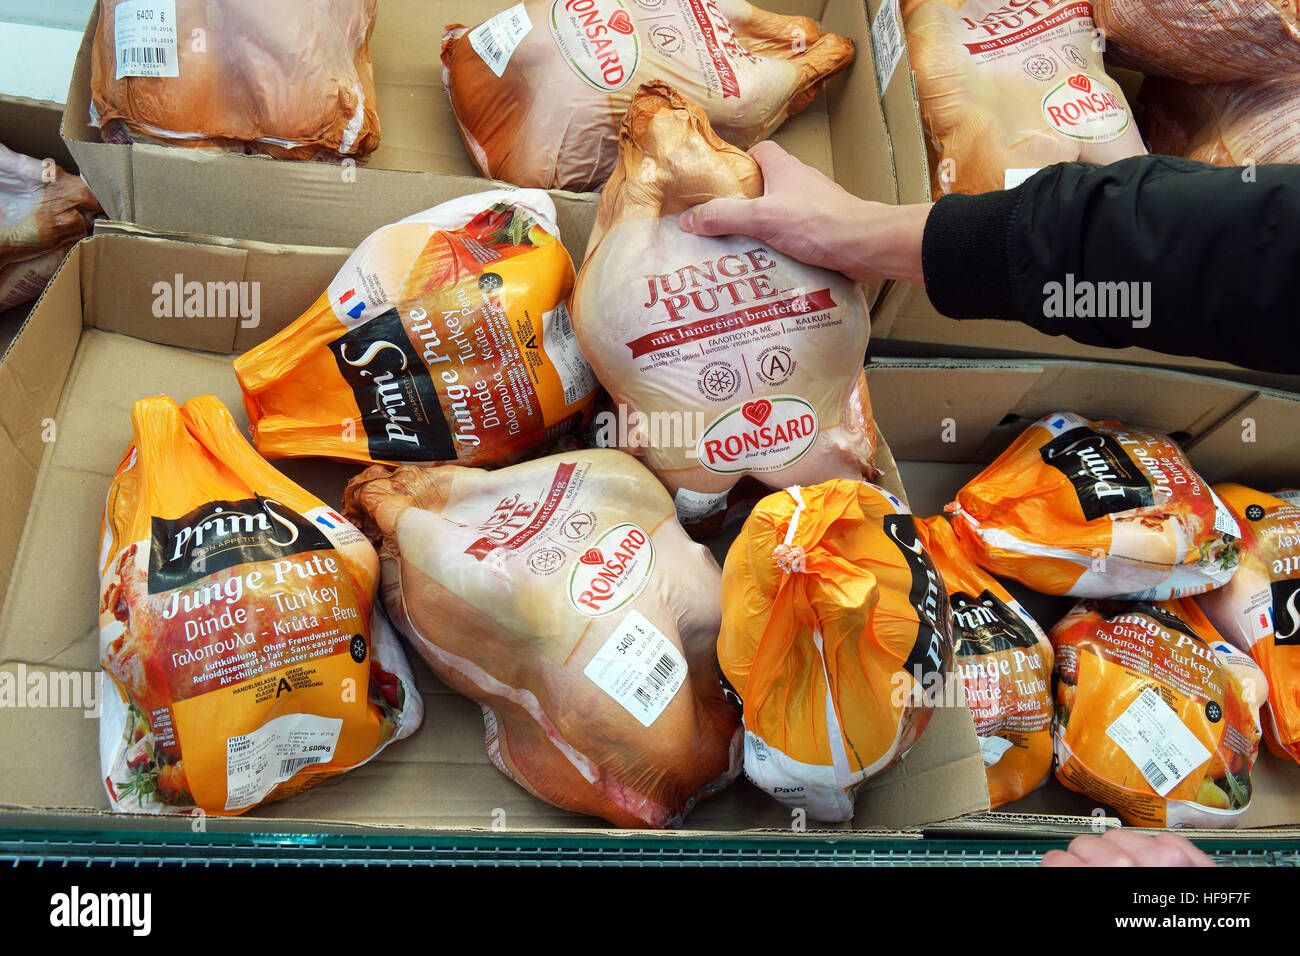 Poultry, deep frozen Turkey packings in a supermarket. - Stock Image